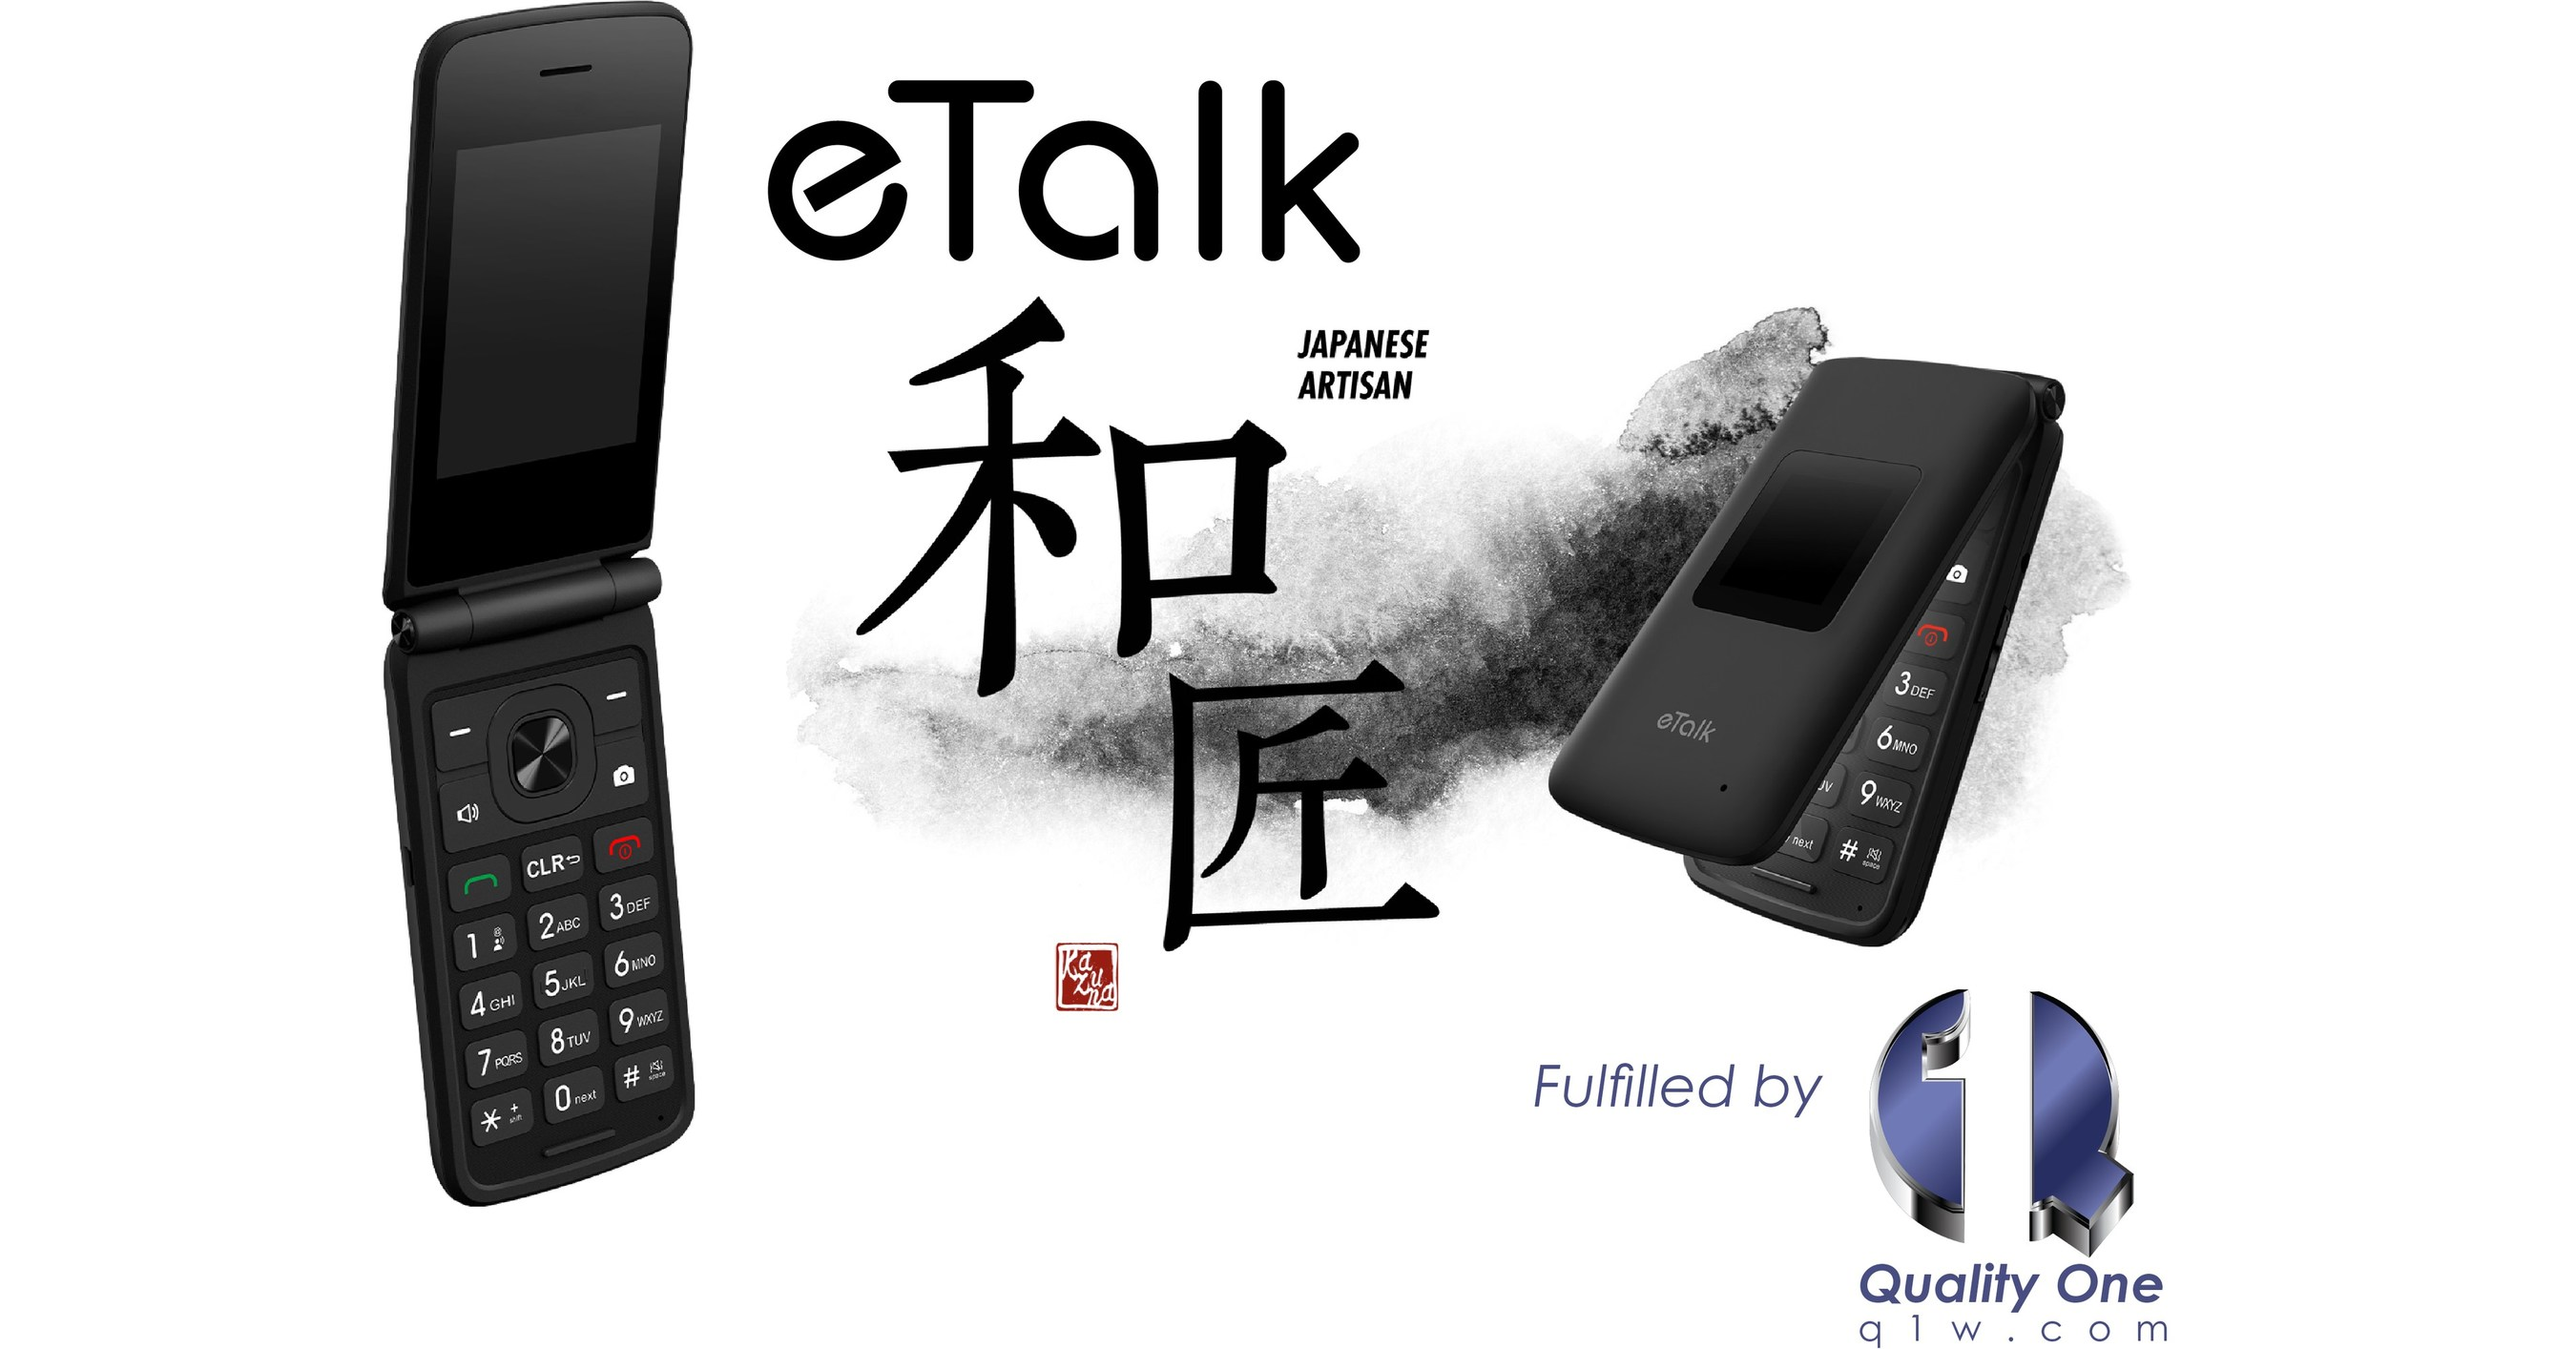 Takumi Japan and Quality One Wireless Team Up to Deliver the Takumi eTalk Flip Phone with a Traditional Postpaid Data Plan on the Verizon Network